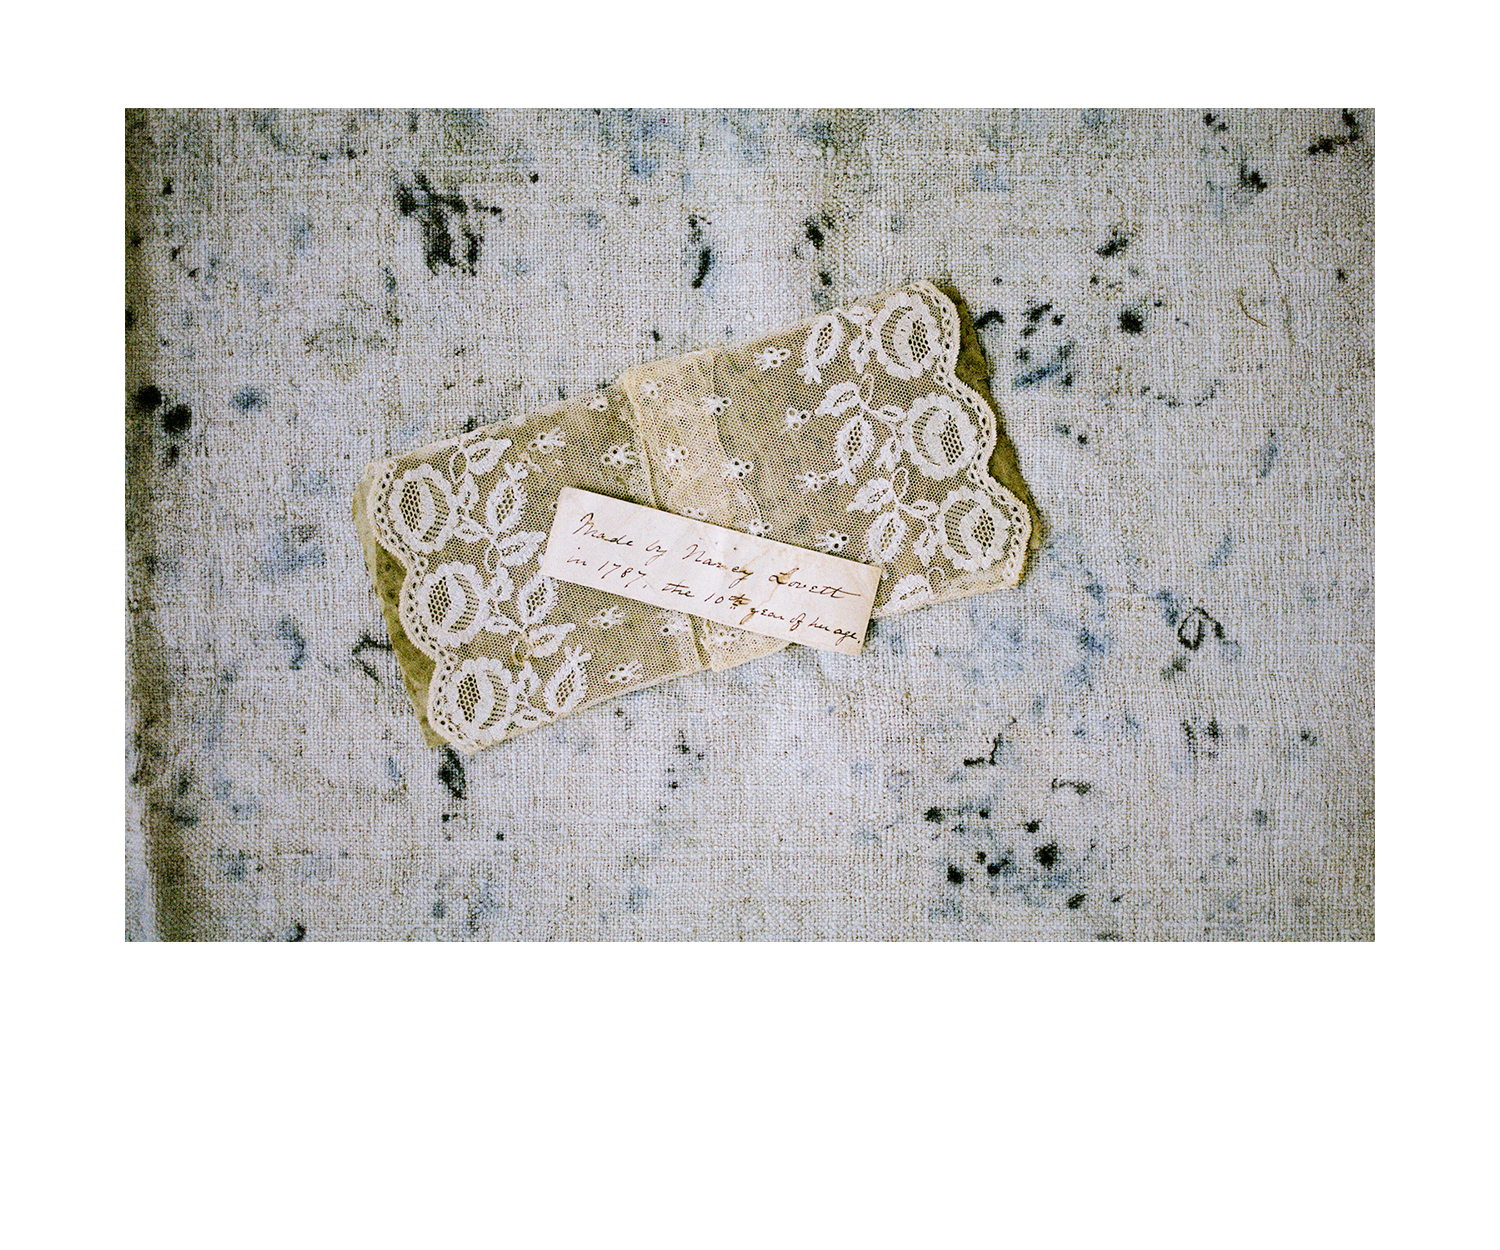 - Handmade Needle Lace, c. 1787, American. This treasured lace made by Nancy Lovett at 10 years old (documented in photo) inspired the research and preservation of many of the MIMI PROBER collection of antique textiles, and the original 'These Hands' collection.